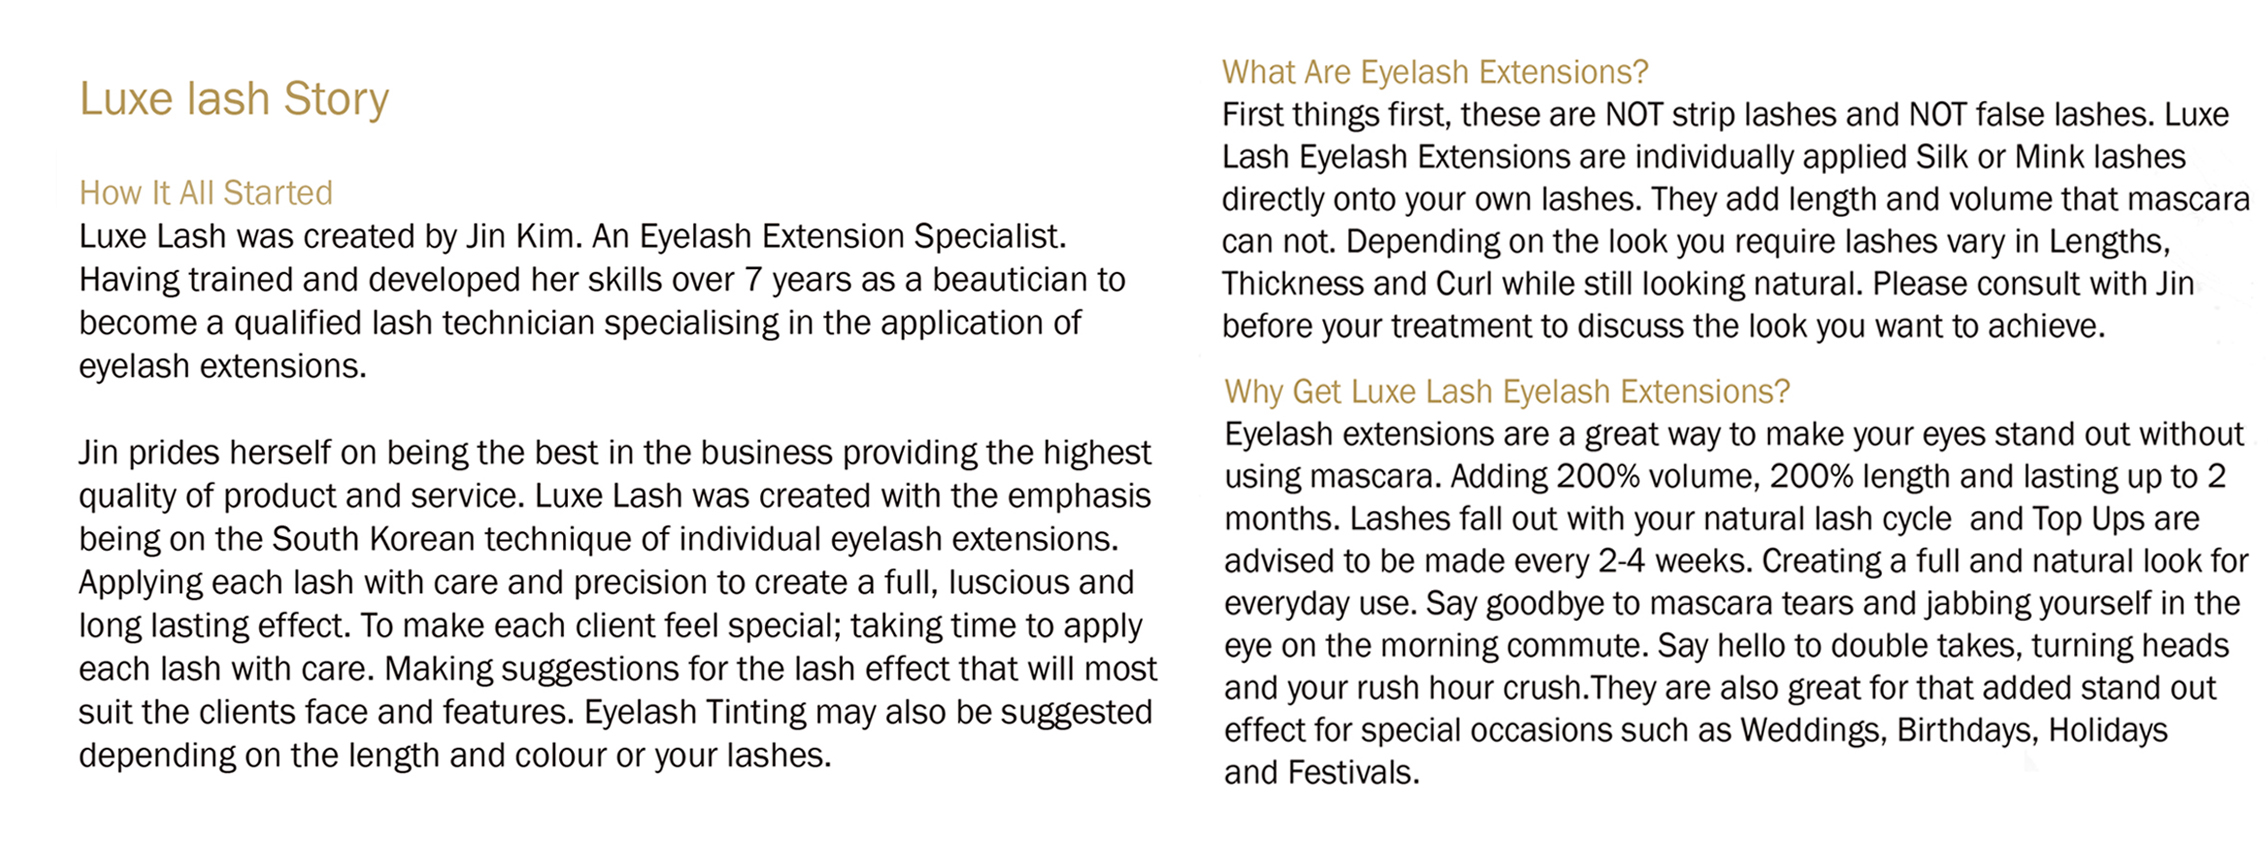 Luxe lash story